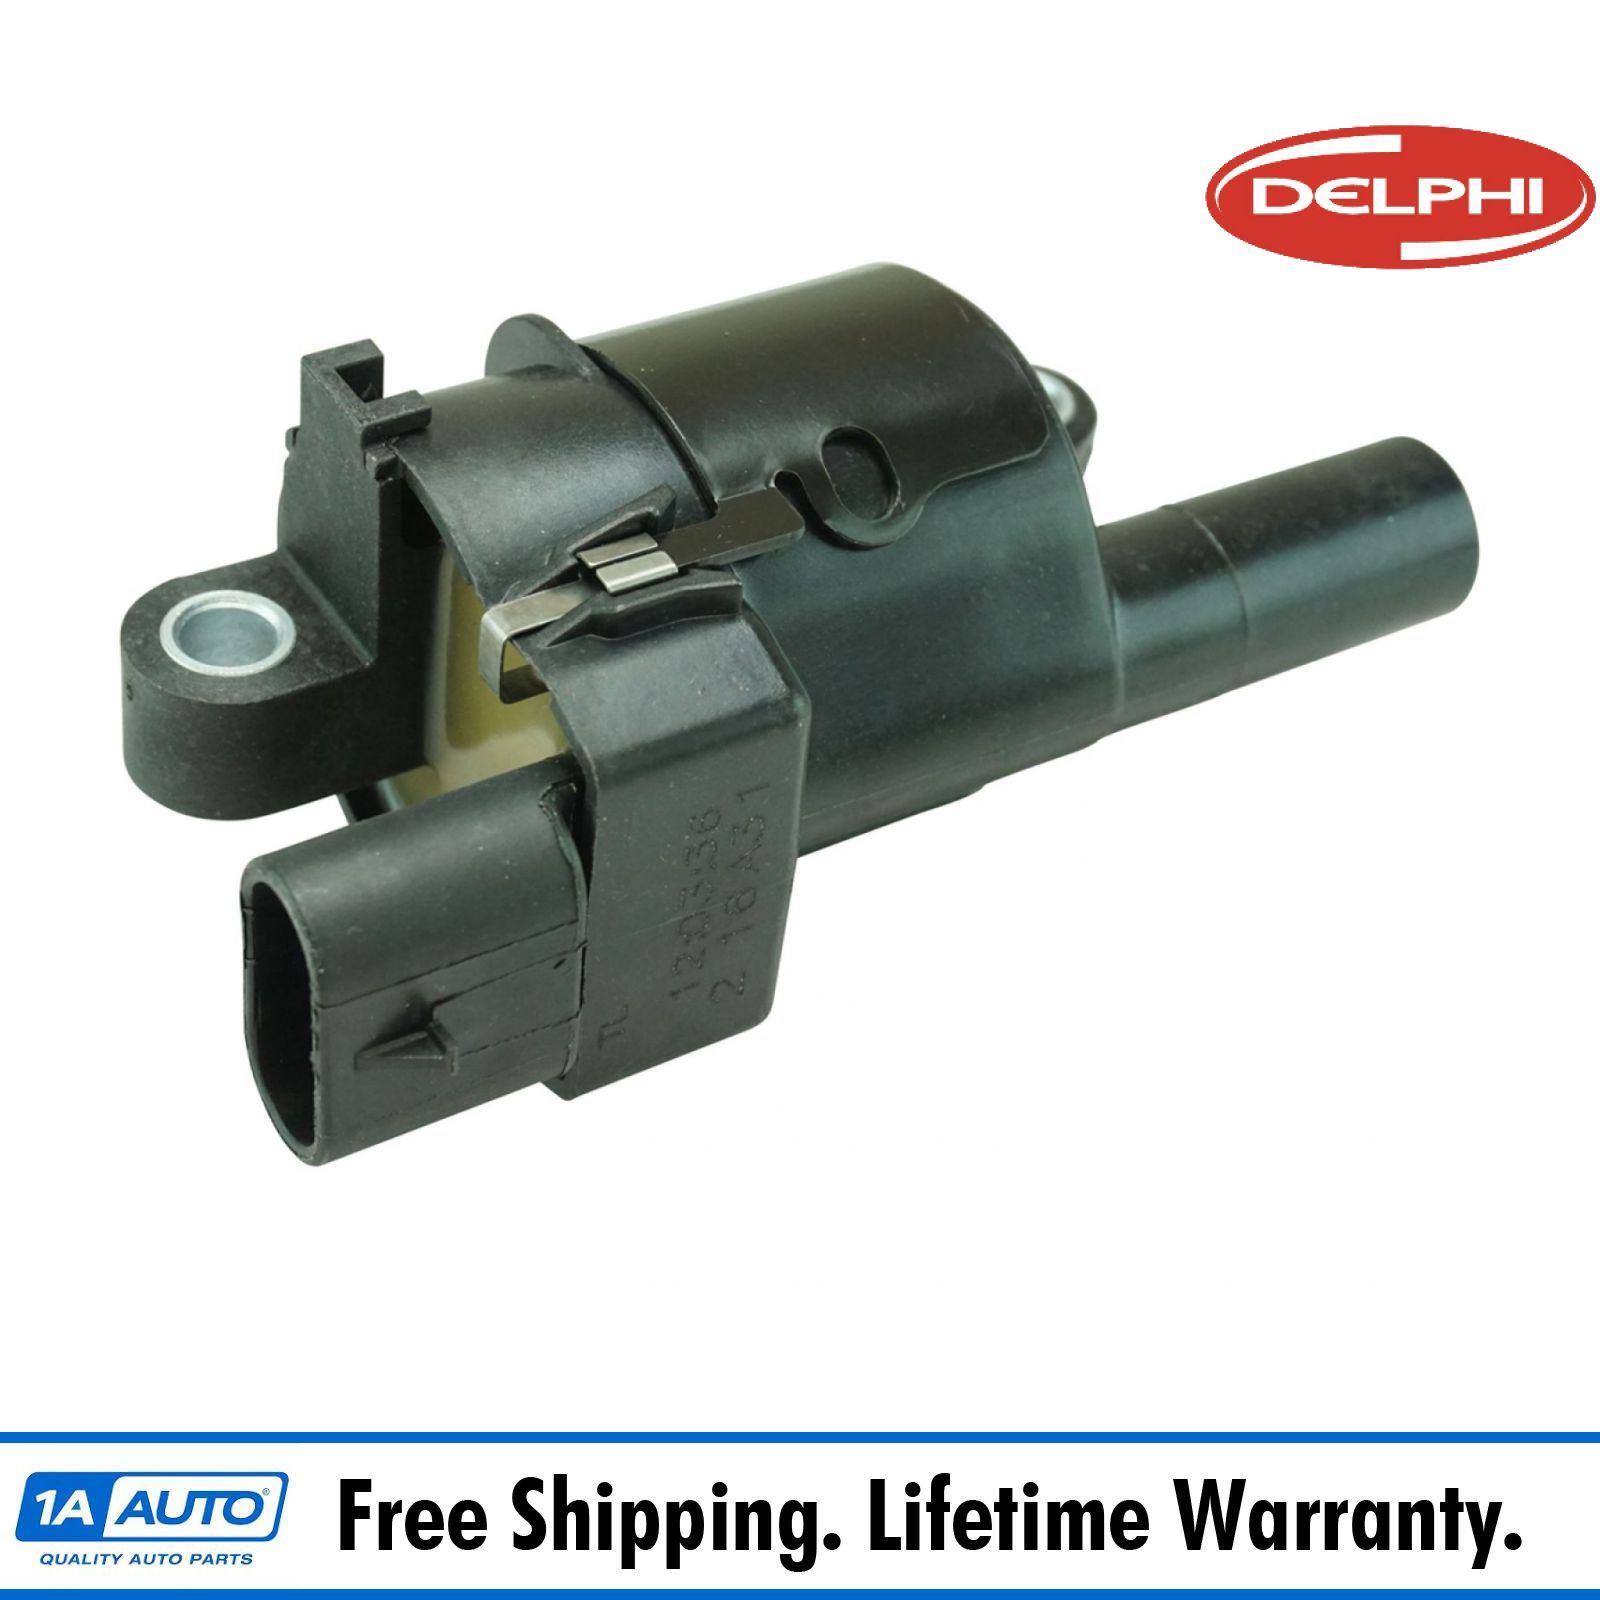 Delphi GN10309 Ignition Coil COP for Buick Cadillac Chevy GMC Saab Brand New